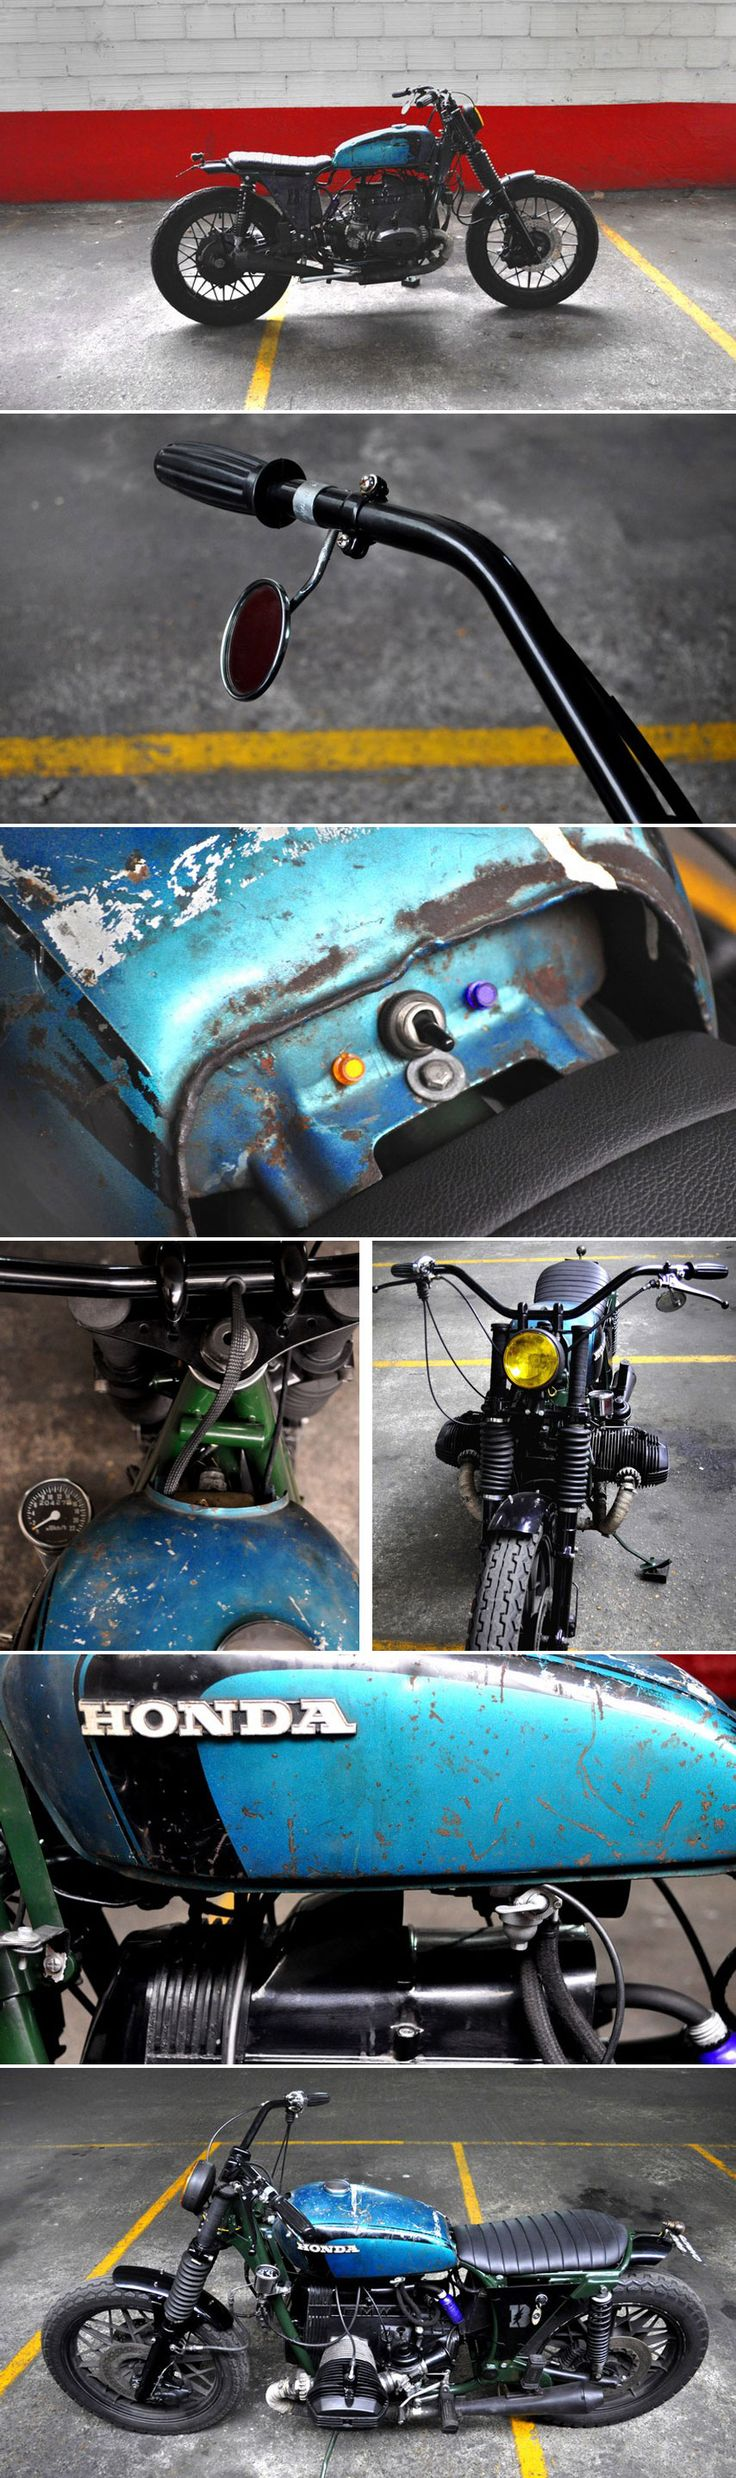 "BMW ""Green Hornet"" by Blitz Motorcycles - http://blitz-motorcycles.com/ Honda tank from the 70's simplified electric wiring Doherty levers 40's bicycle rear tail light (light and stop) headlight from a vintage race car (70's) handcrafted ""Blitz Motorcycles"" battery covers High temperature mat black powder coated ""megathon"" short mufflers Triumph T140 US handlebar Dunlop K81 tires"